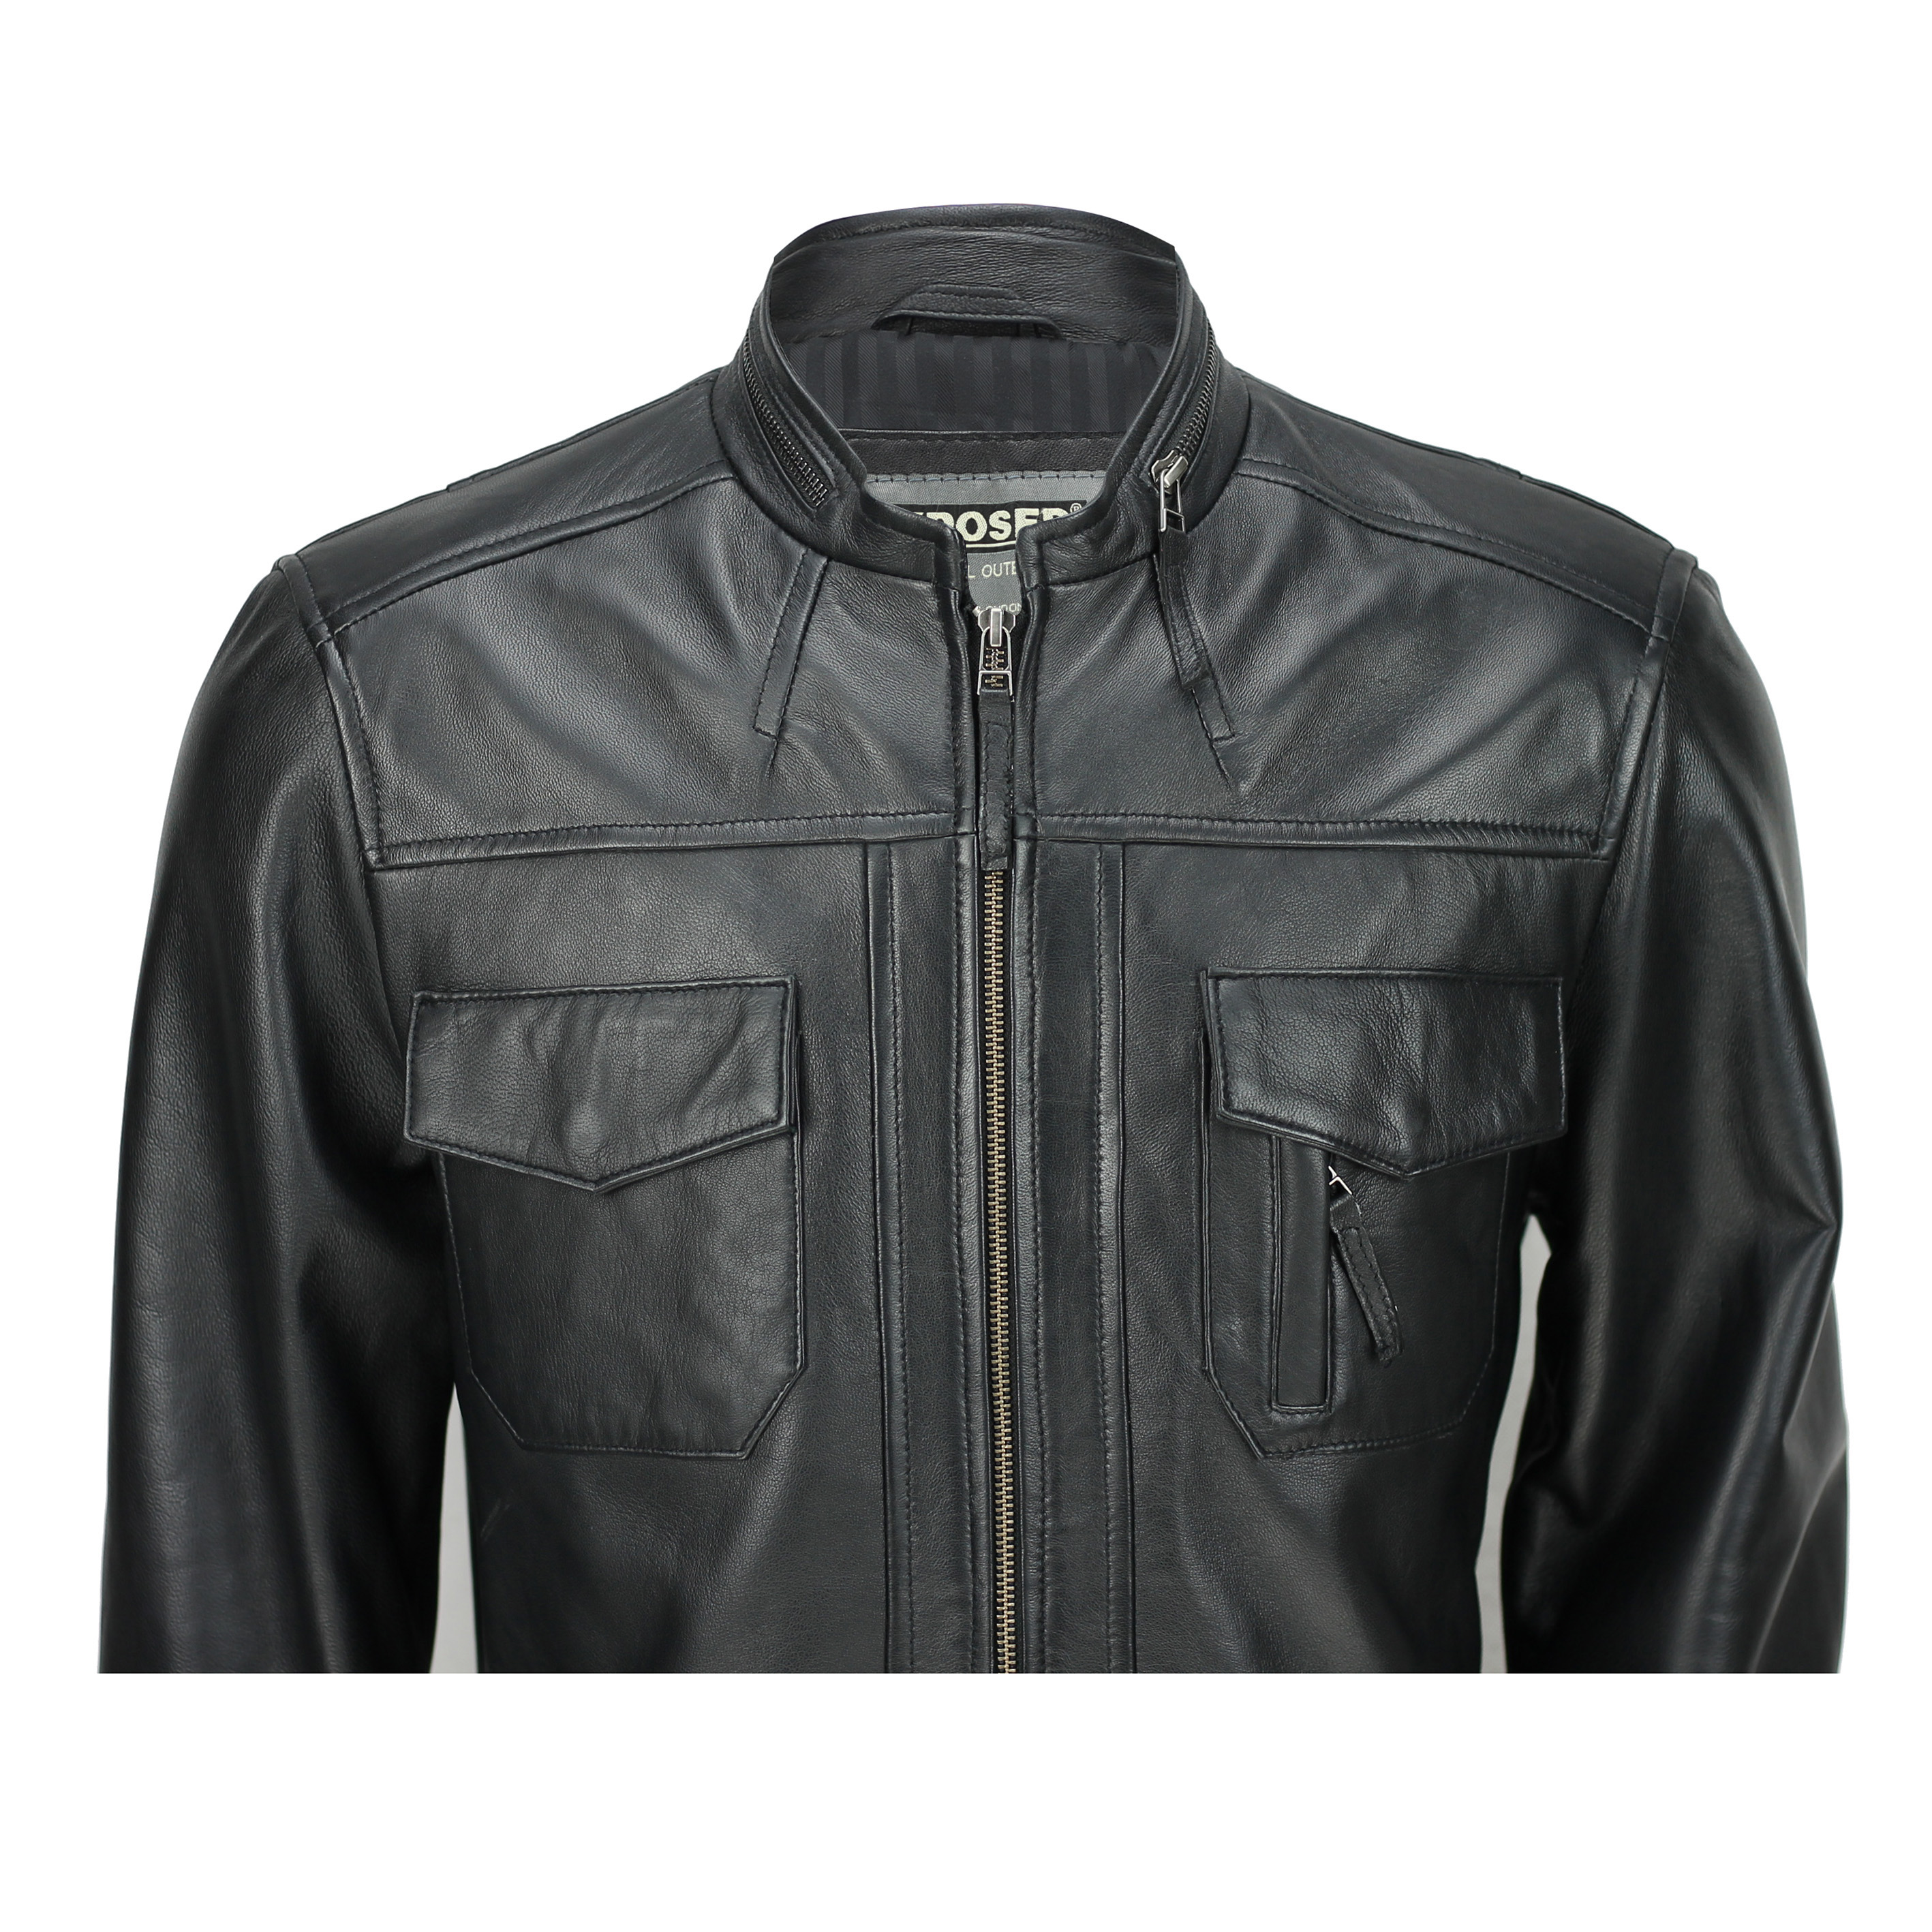 Mens New Brown Real Leather Retro Smart Casual Zipped Biker Style Bomber Jacket